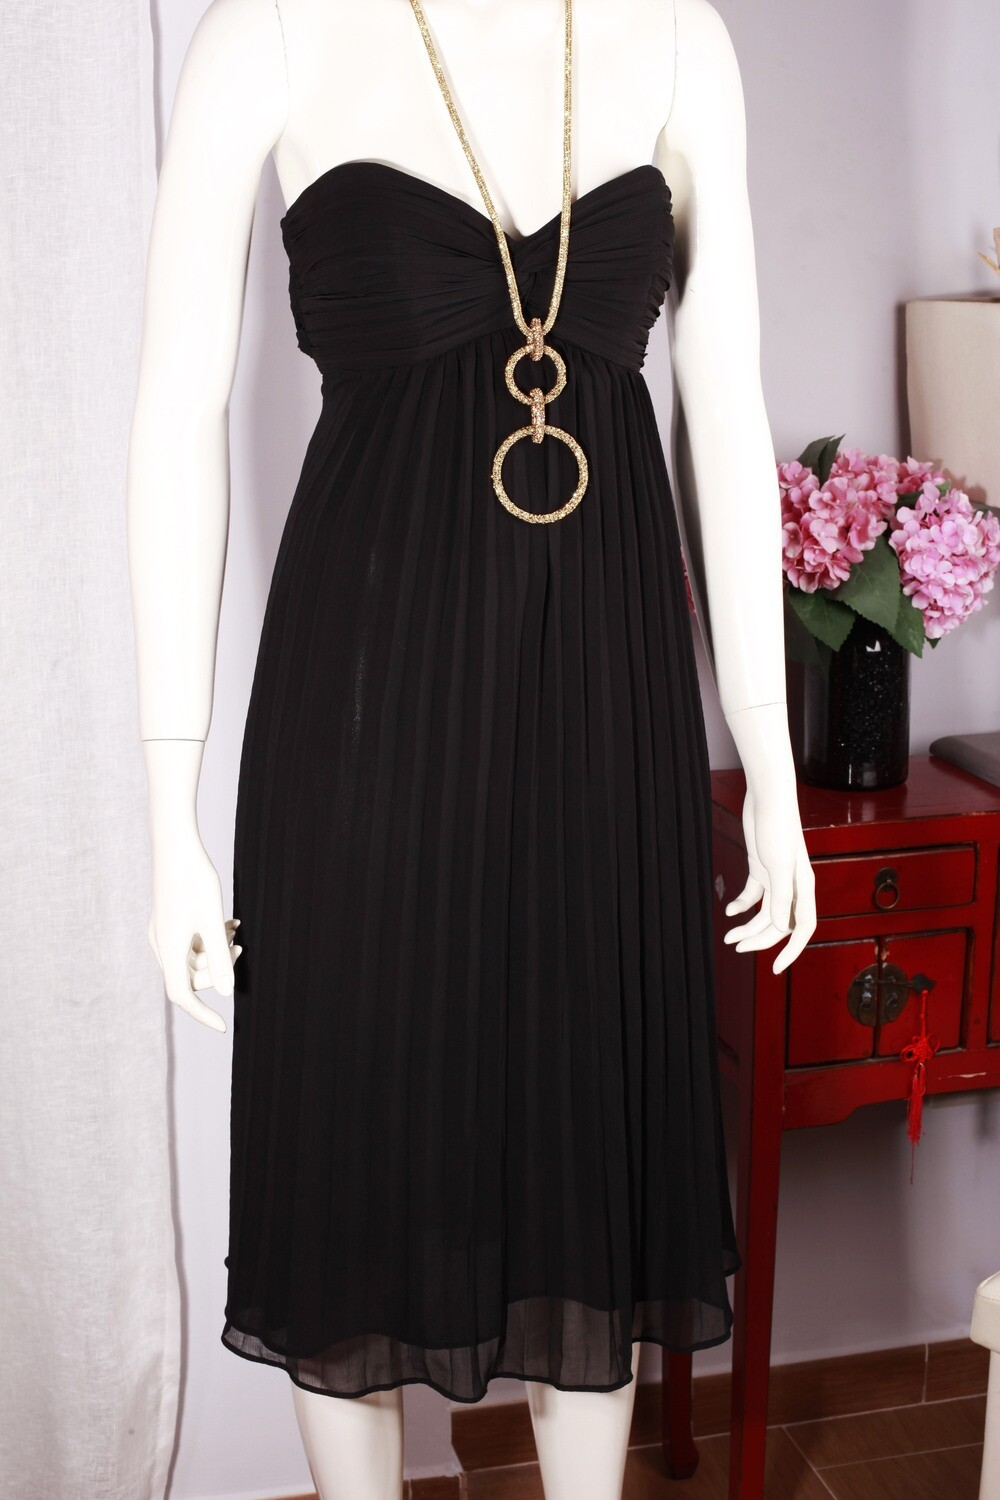 Black pleated dress by Coast